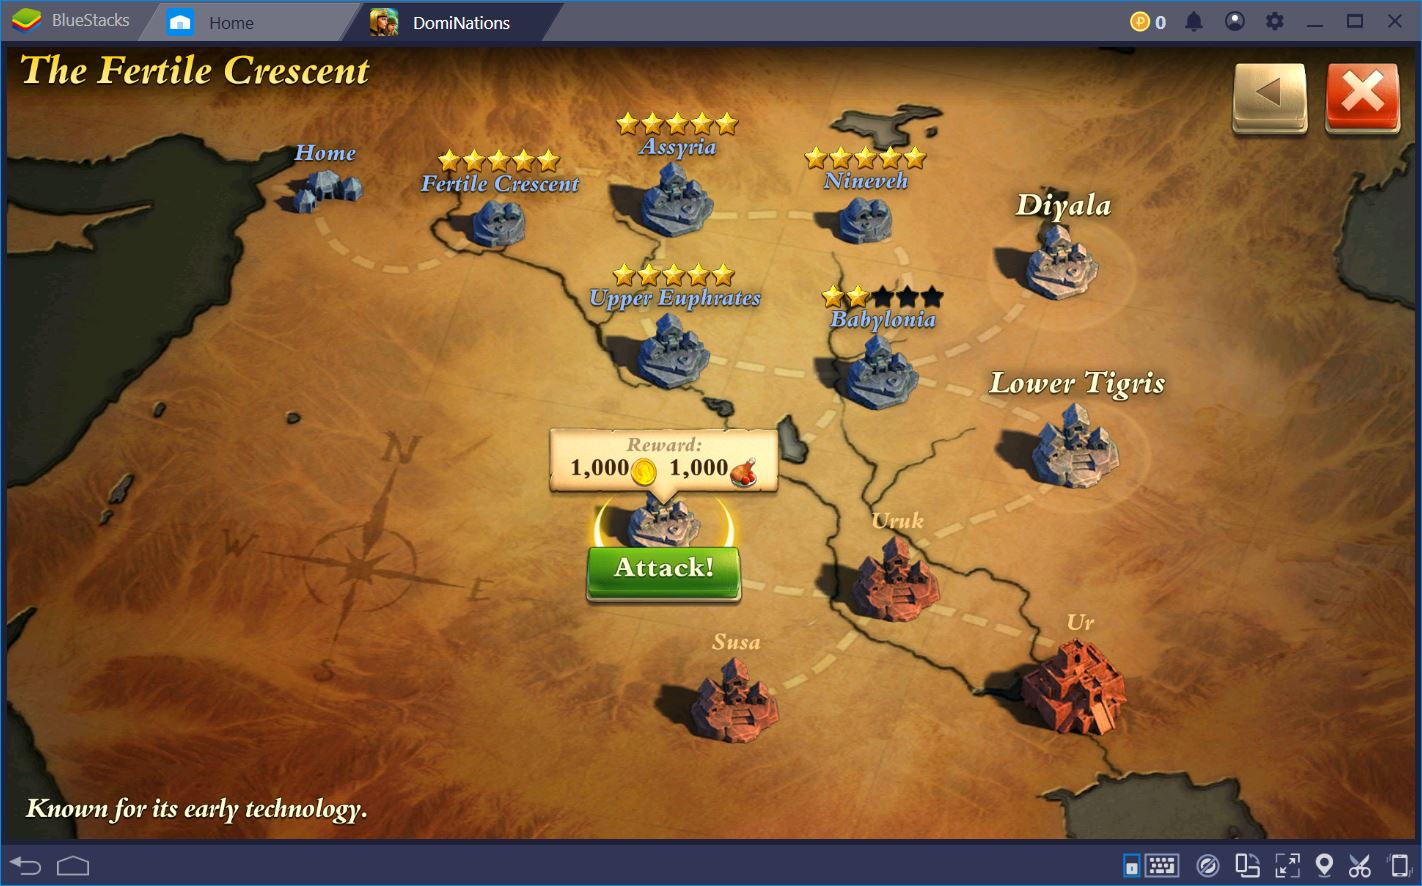 Conquiste o mundo de DomiNations com BlueStacks